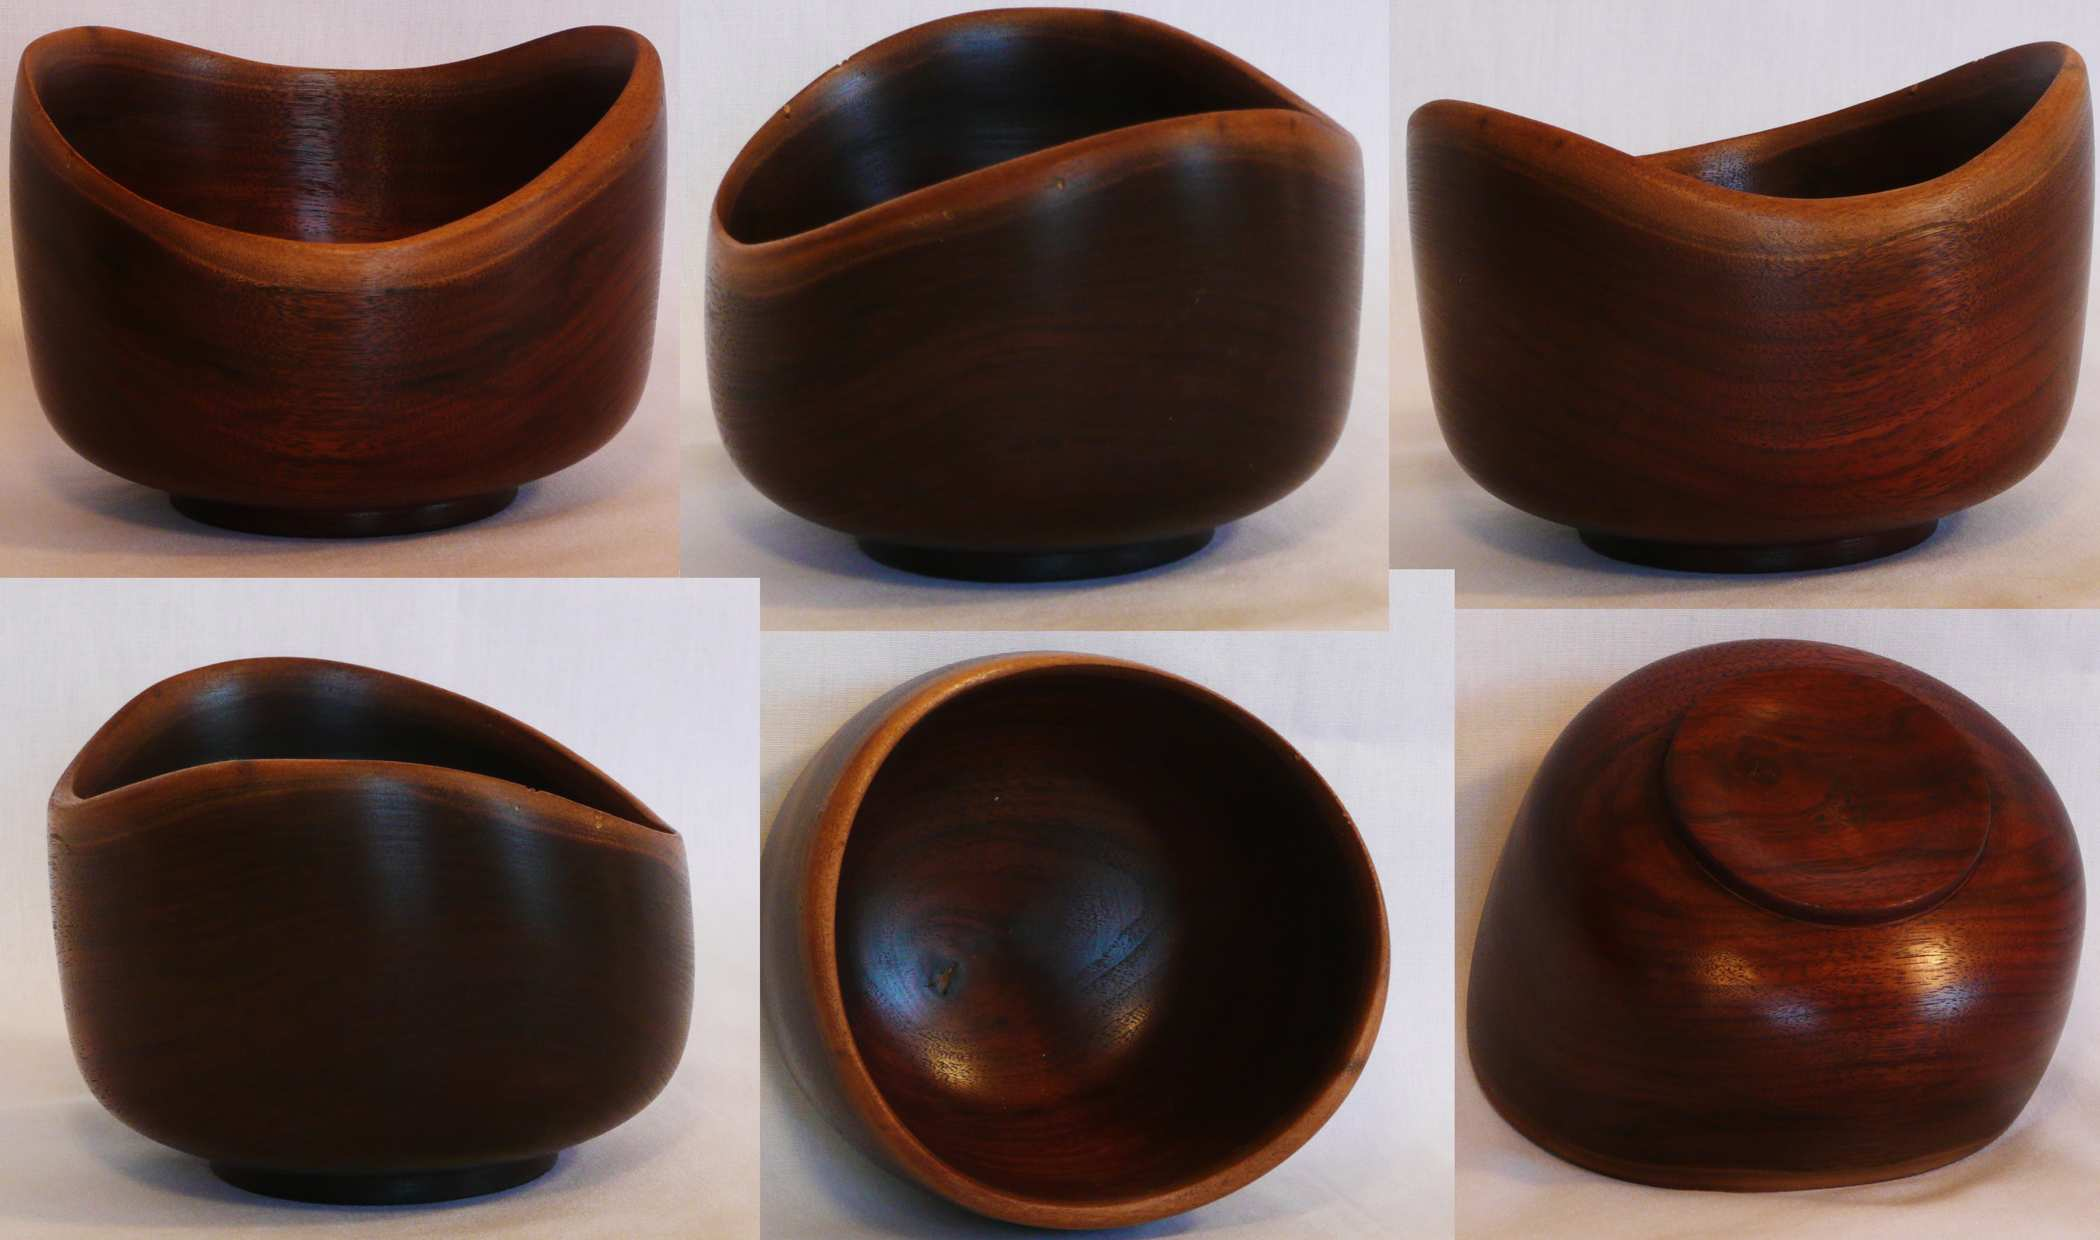 Walnut hand turned bowl with natural edge by Cynthia D. Haney.